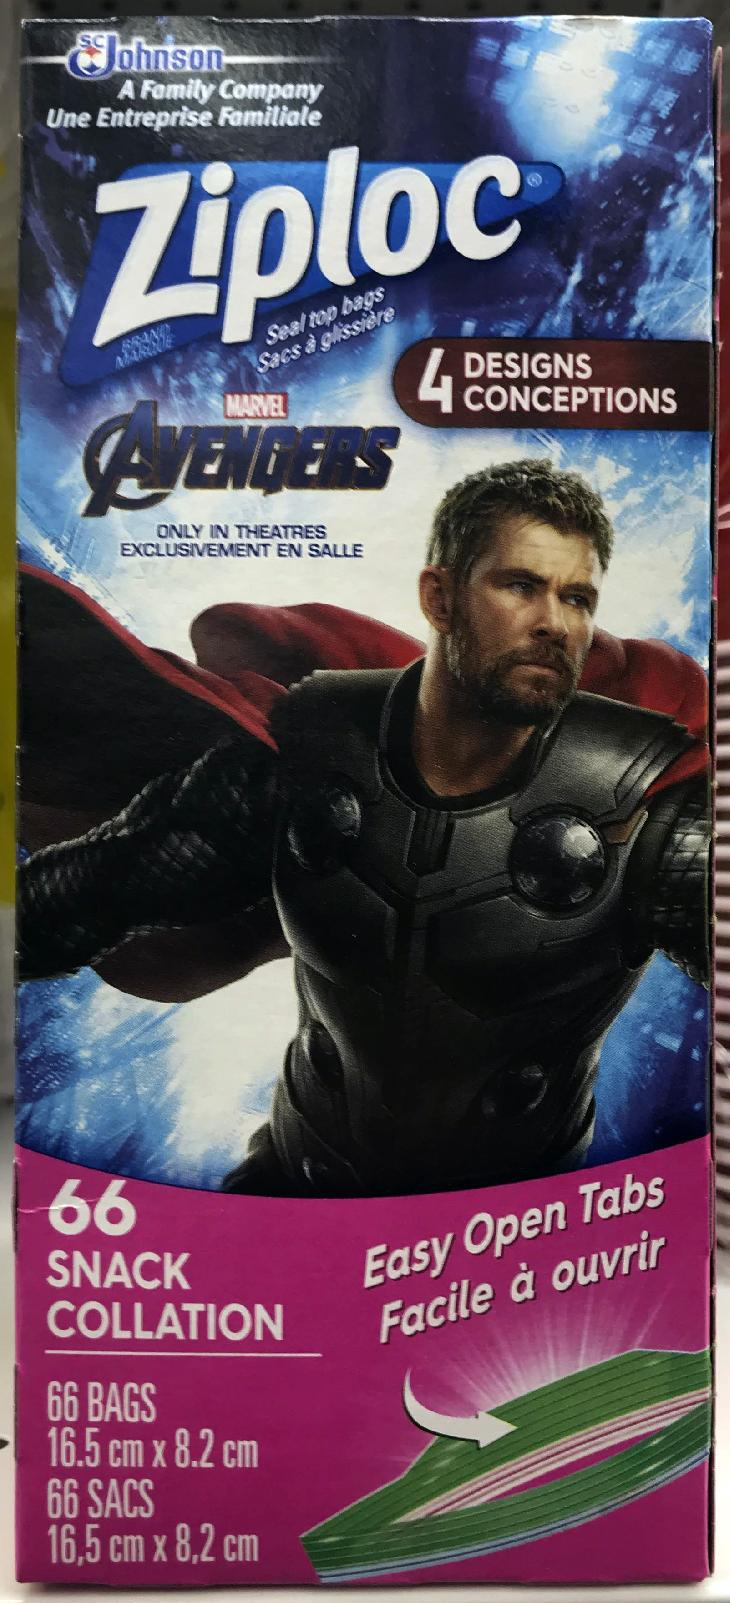 Marvel Avengers collector series. The front of the box cover for a Ziploc snack bags.  This limited edition box has an image of Thor.